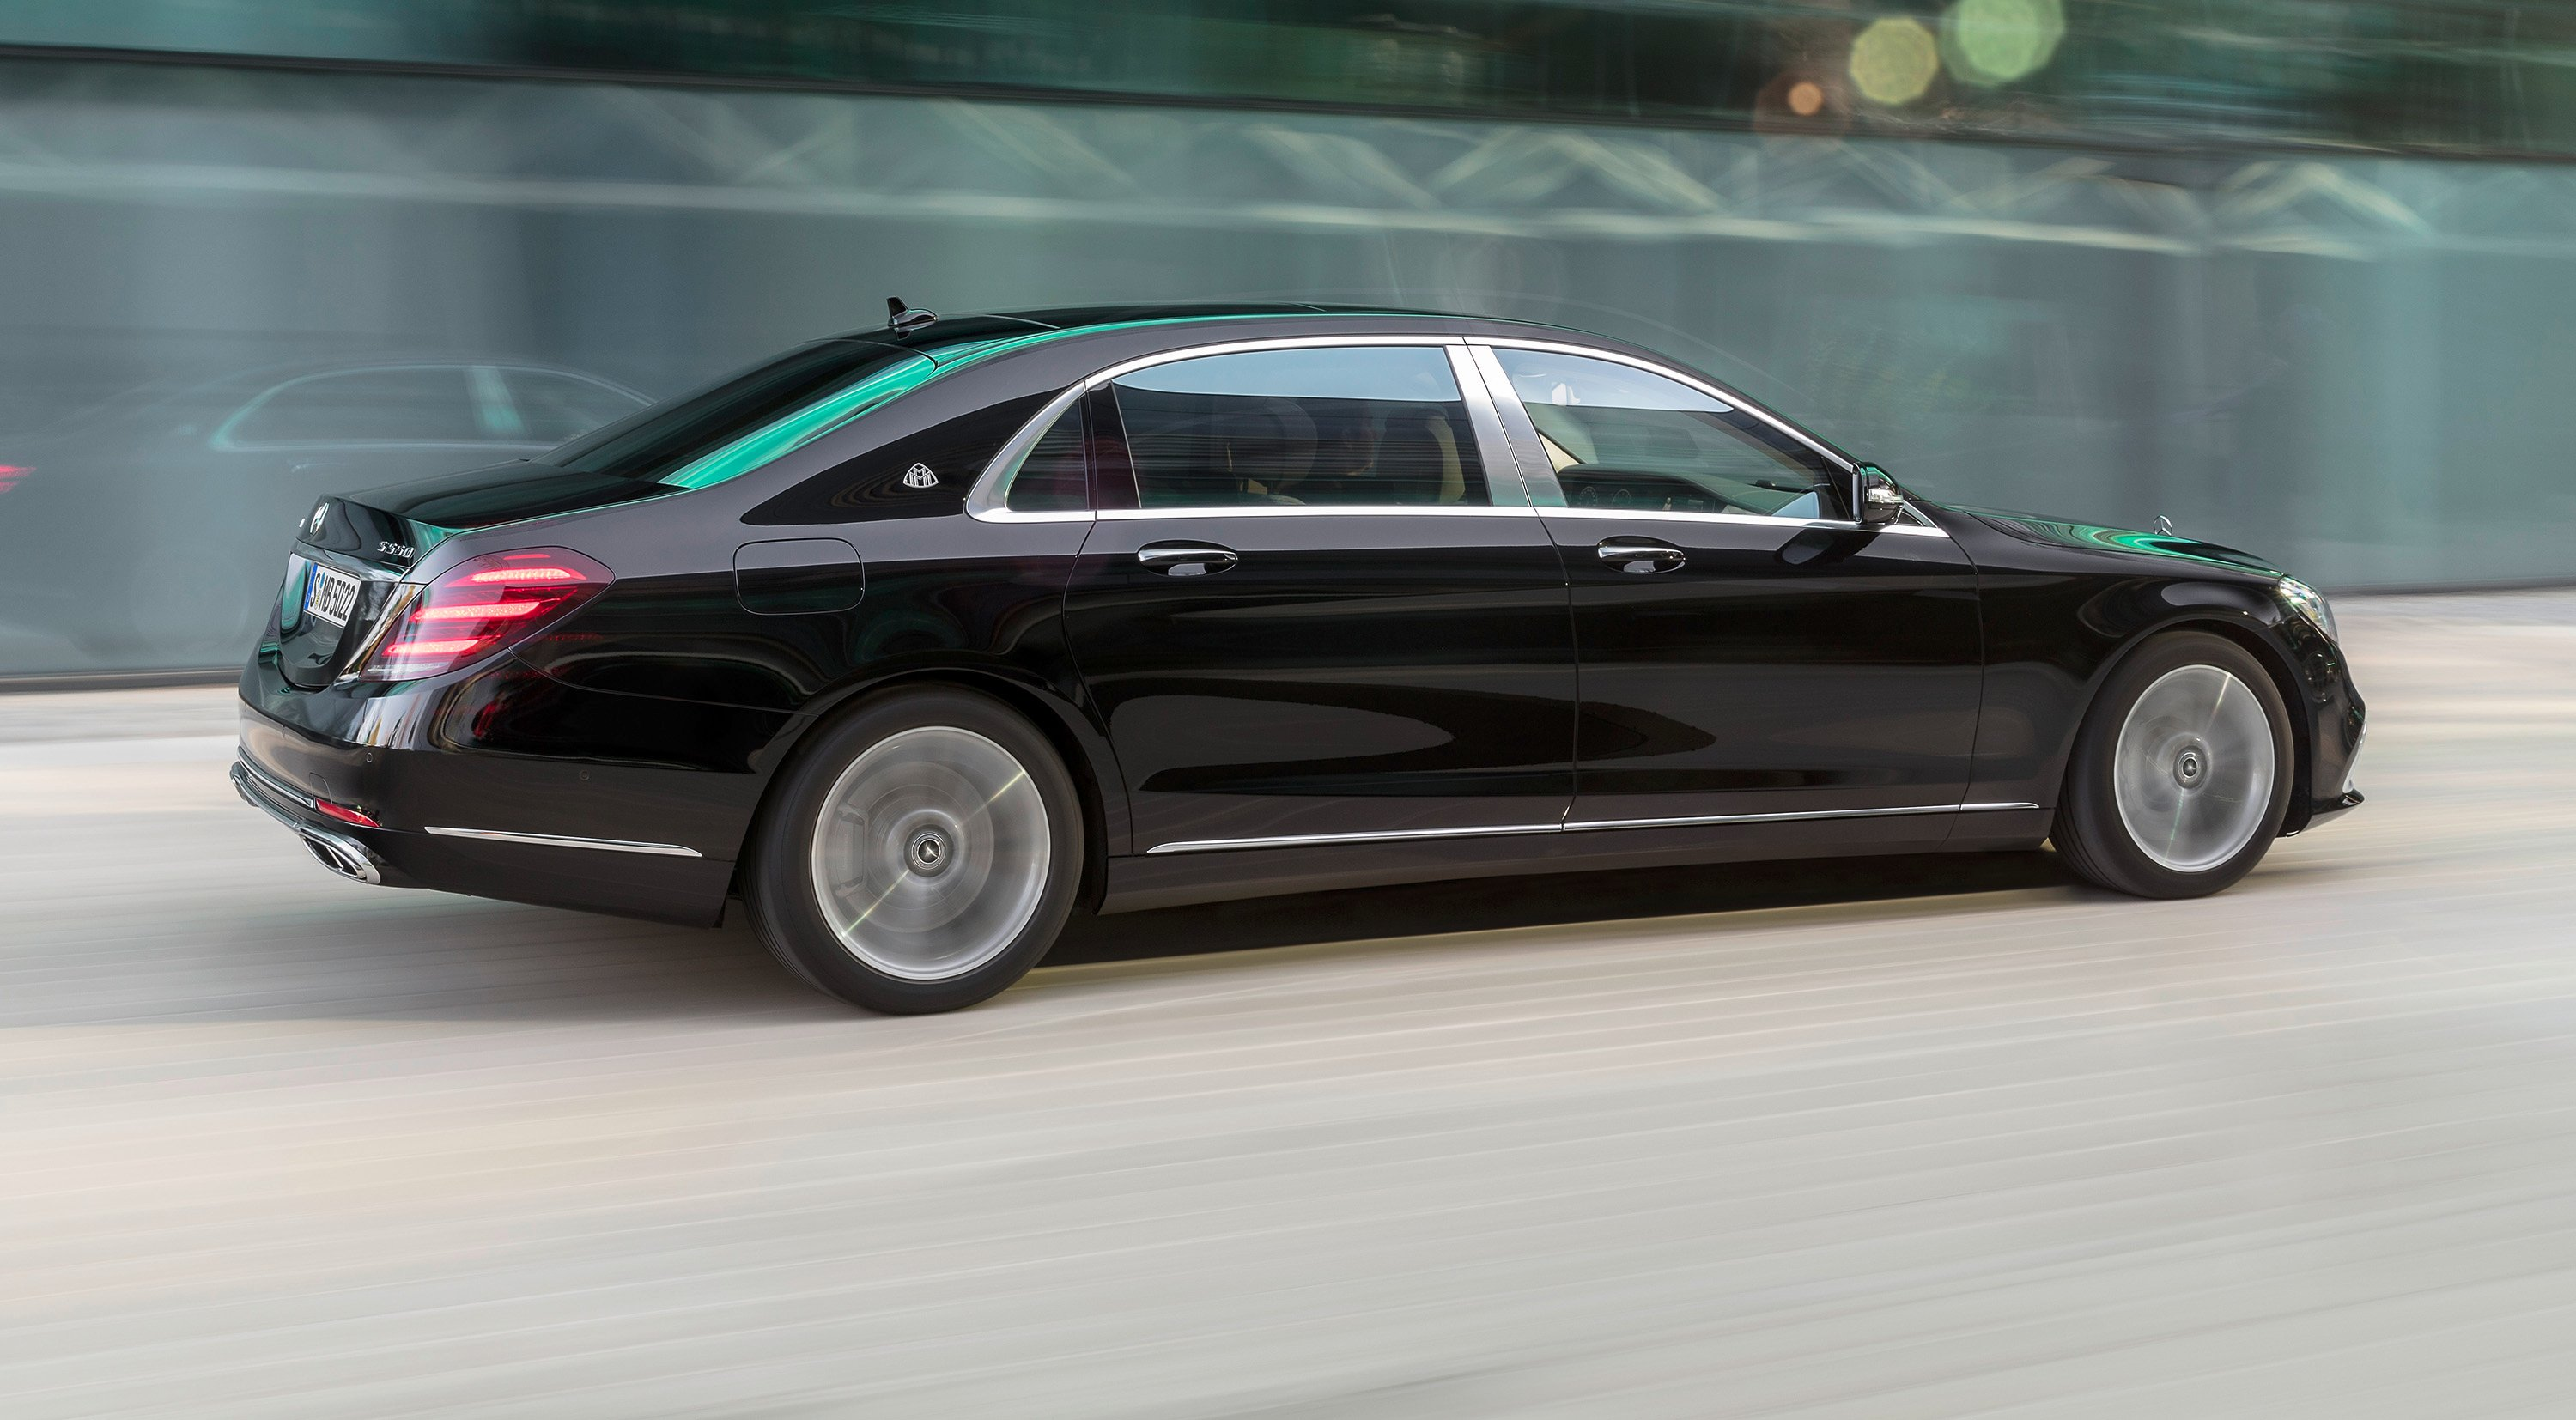 2018 Mercedes-Benz S-Class, AMG, Maybach models revealed - Photos (1 of 39)